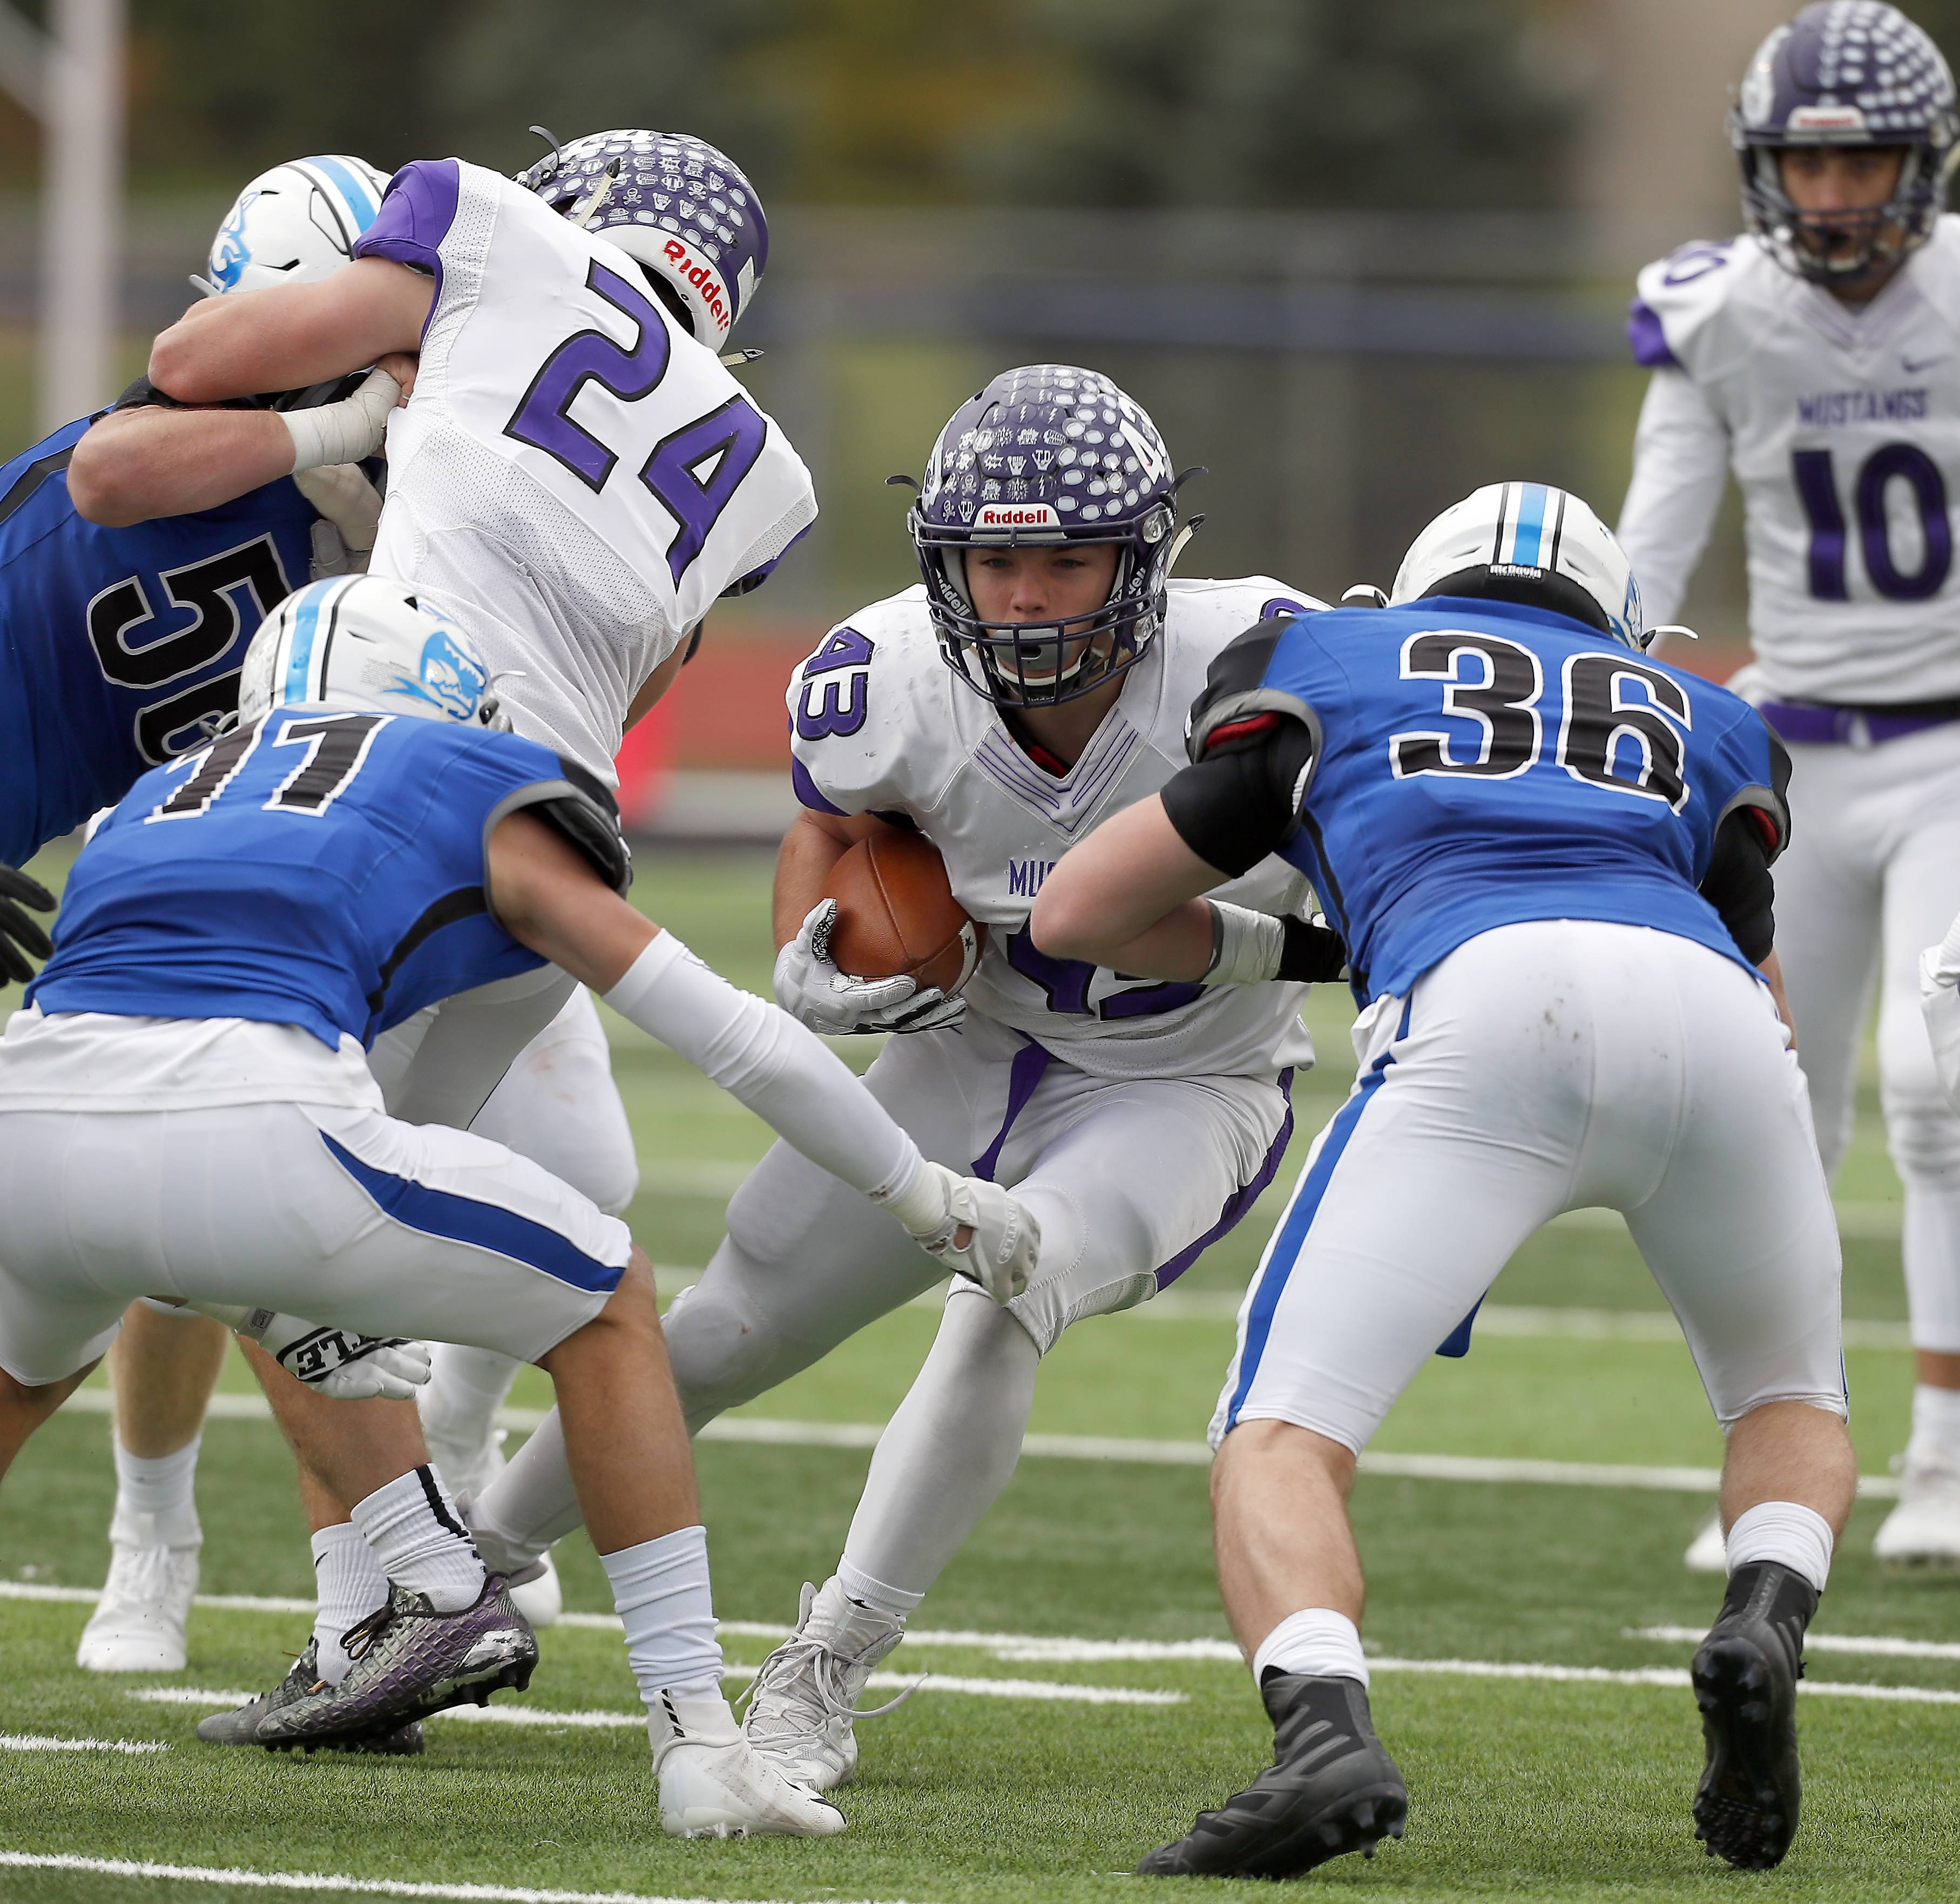 Rolling Meadows' Tymoteusz Szylak (C) (43) moves between St. Charles North's Egon Hein (11) and John Williams, II (36) Saturday during IHSA Class 7A playoff football in St. Charles.